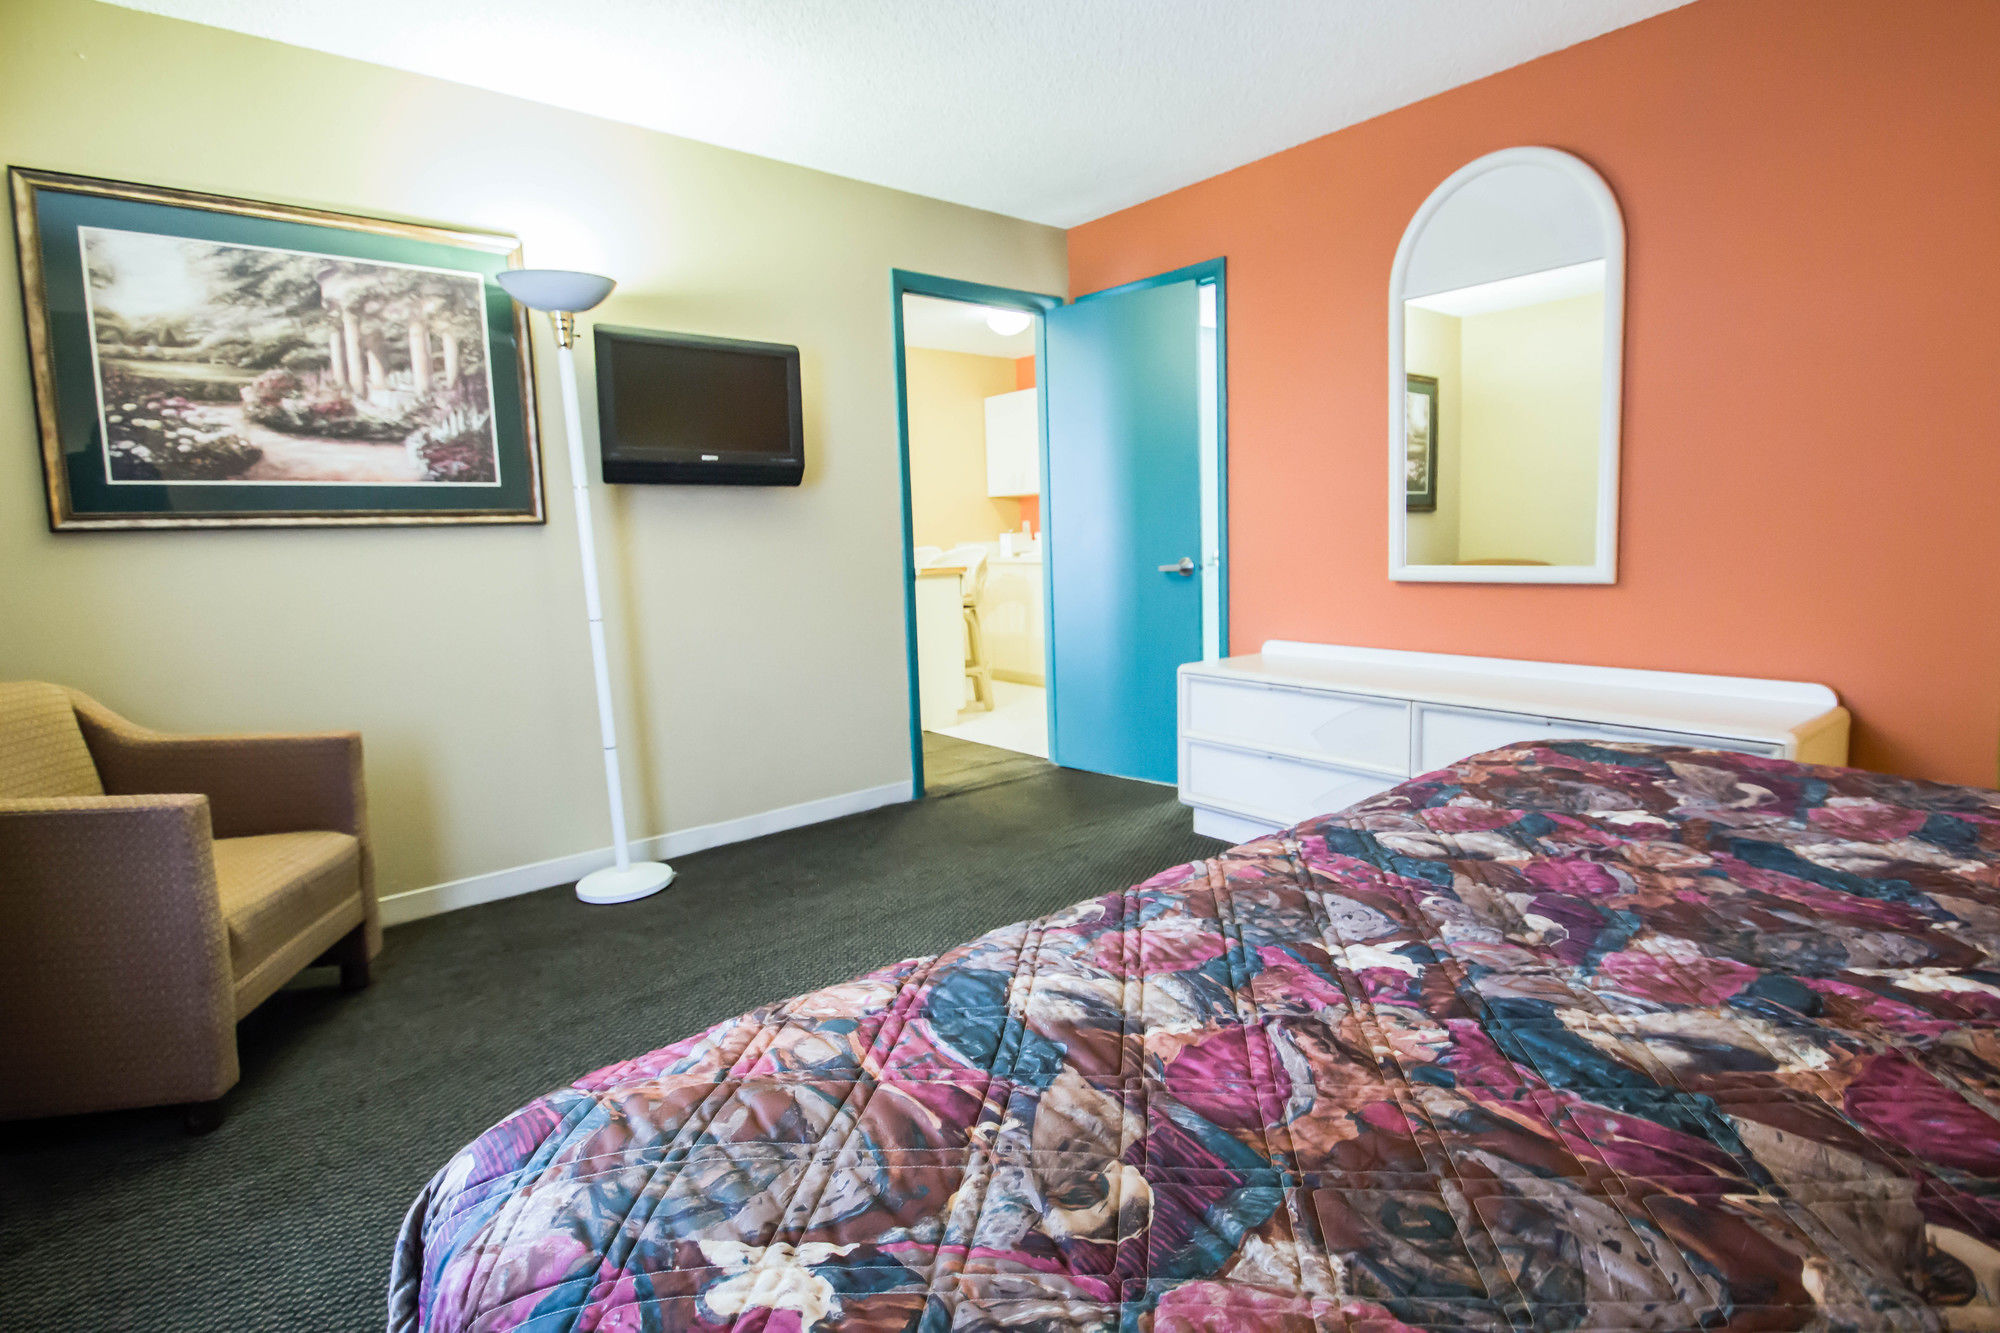 Rodeway Inn And Suites in Haines City, FL